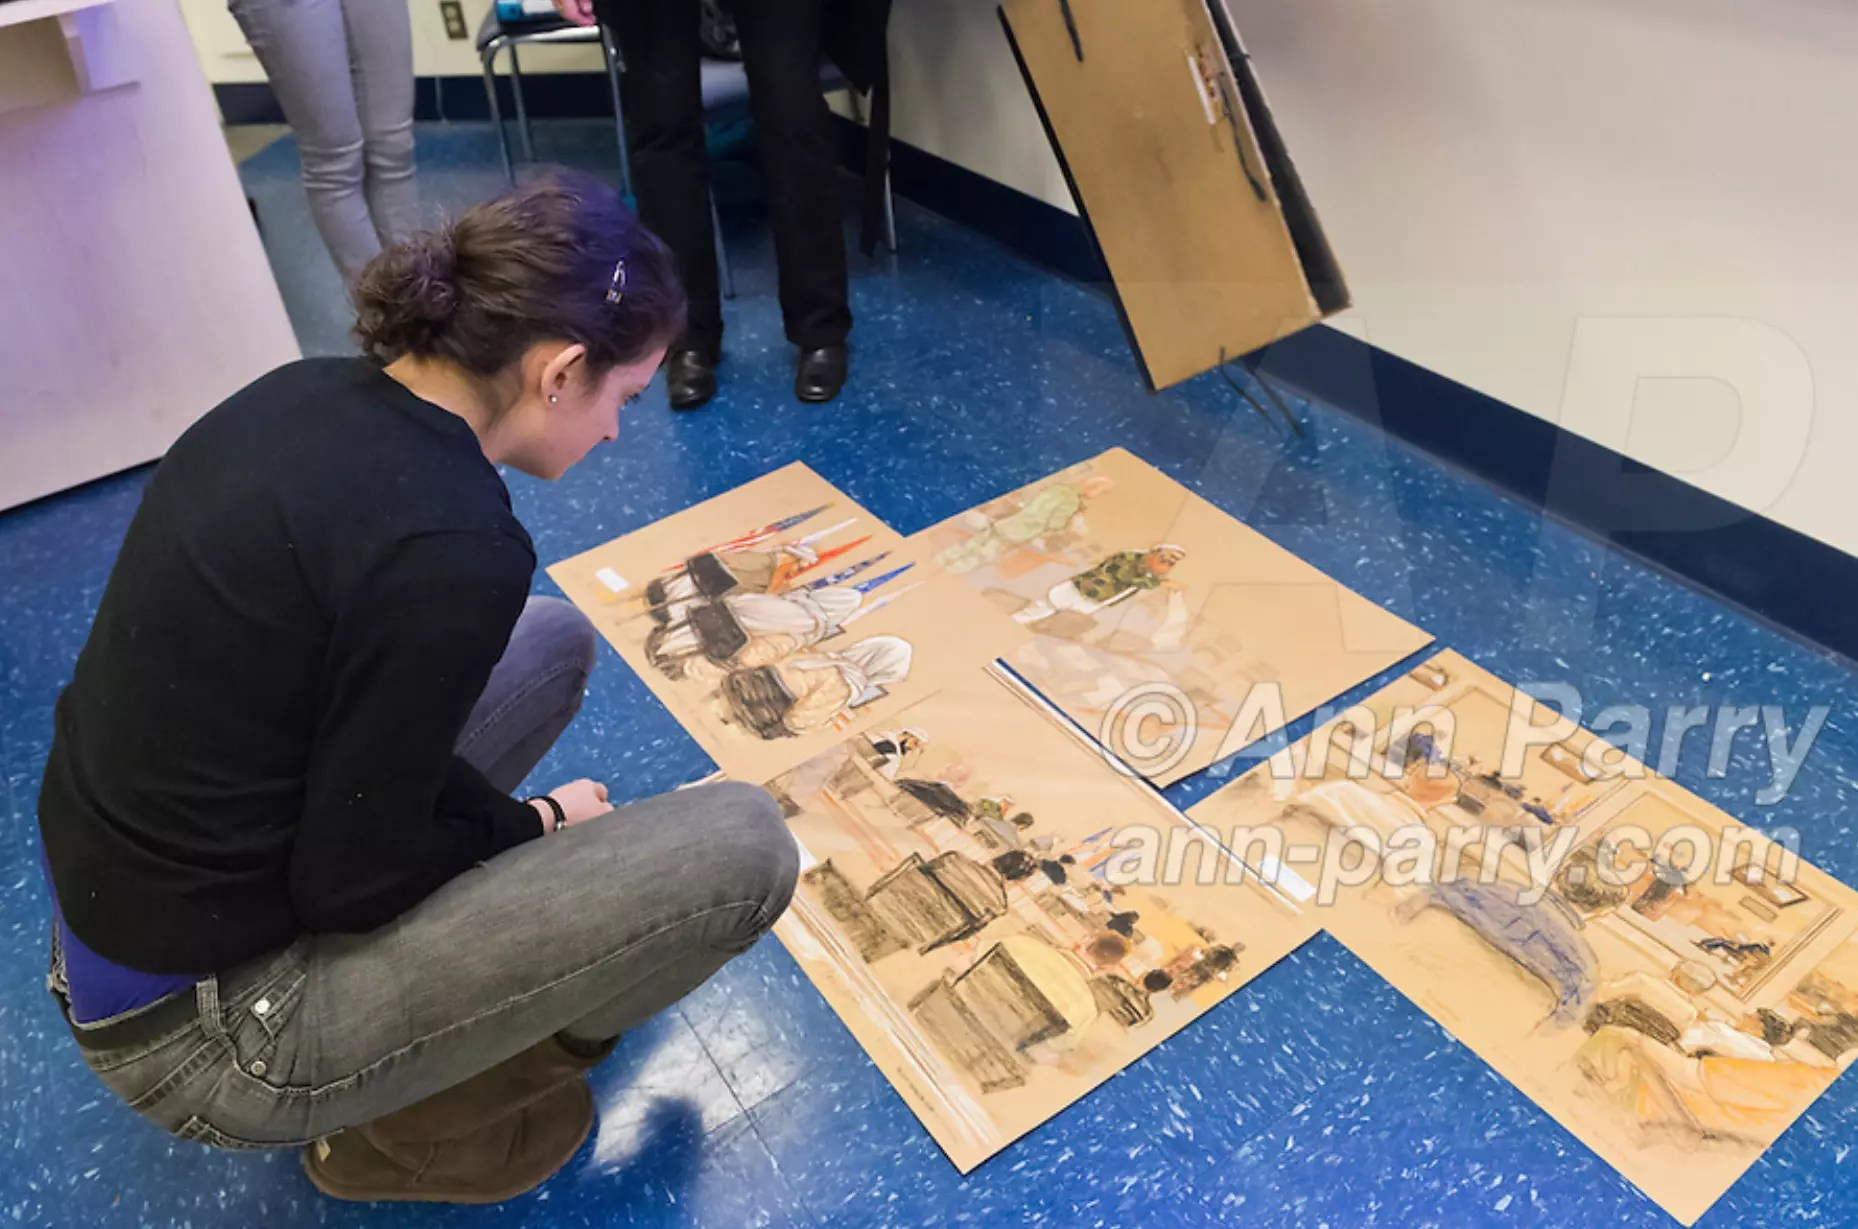 "Hempstead, NY, U.S. 12th Nov., 2013. Janet Hamlin, at back in black pants, a courtroom artist covering the military tribunals at Guantanamo Bay since 2006, shows her charcoal drawings and discusses her work at Hofstra University. A student is looking at sketches displayed on floor. Much of the time she was the only journalist providing a visual record of the events at the United States naval base in Cuba, and her new book ""Sketching Guantanomo"" is a collection of her images."